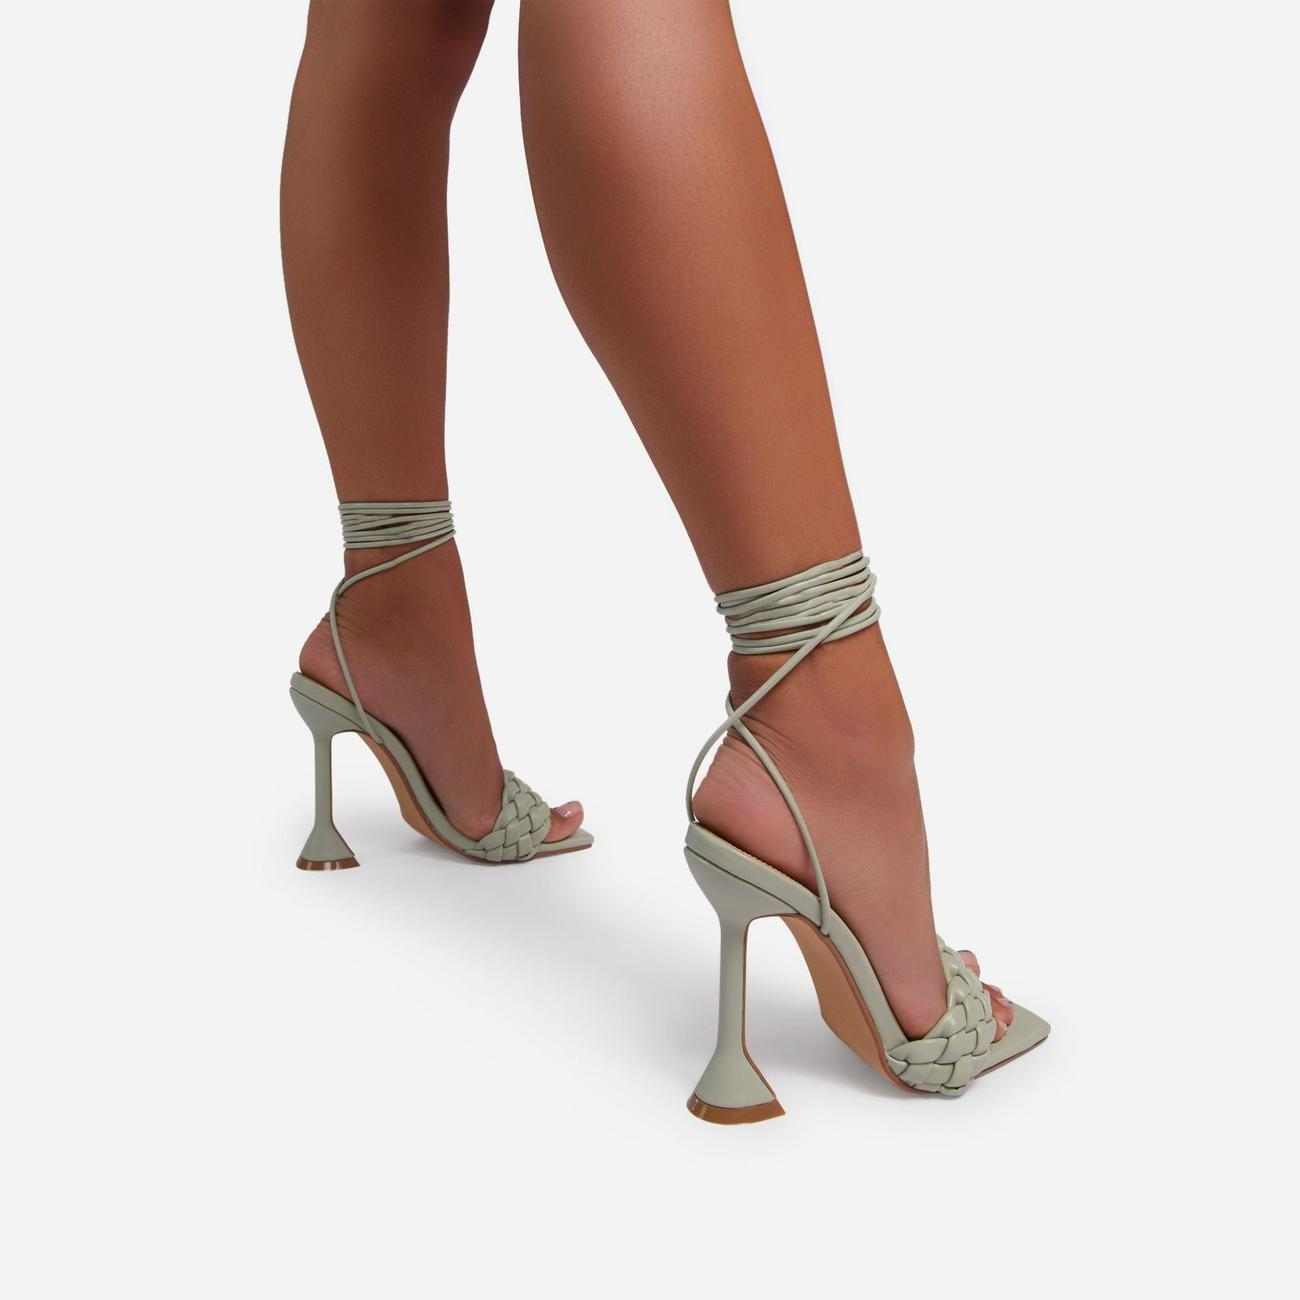 Master Lace Up Square Toe Woven Pyramid Heel In Sage Green Faux Leather Image 4